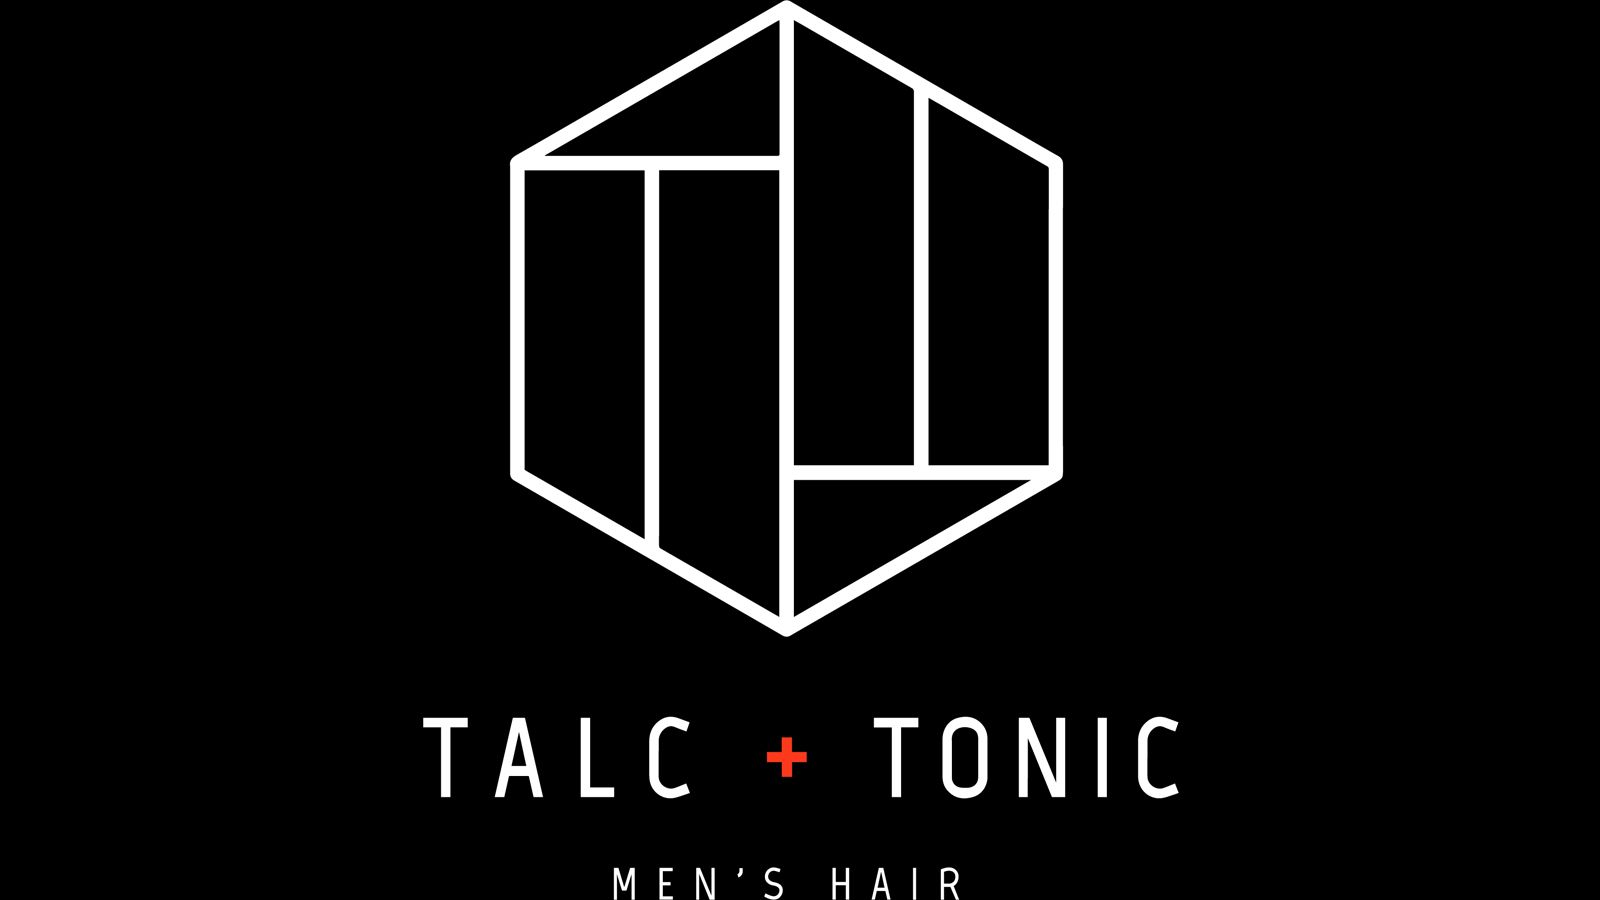 Talc + Tonic's Men Salon